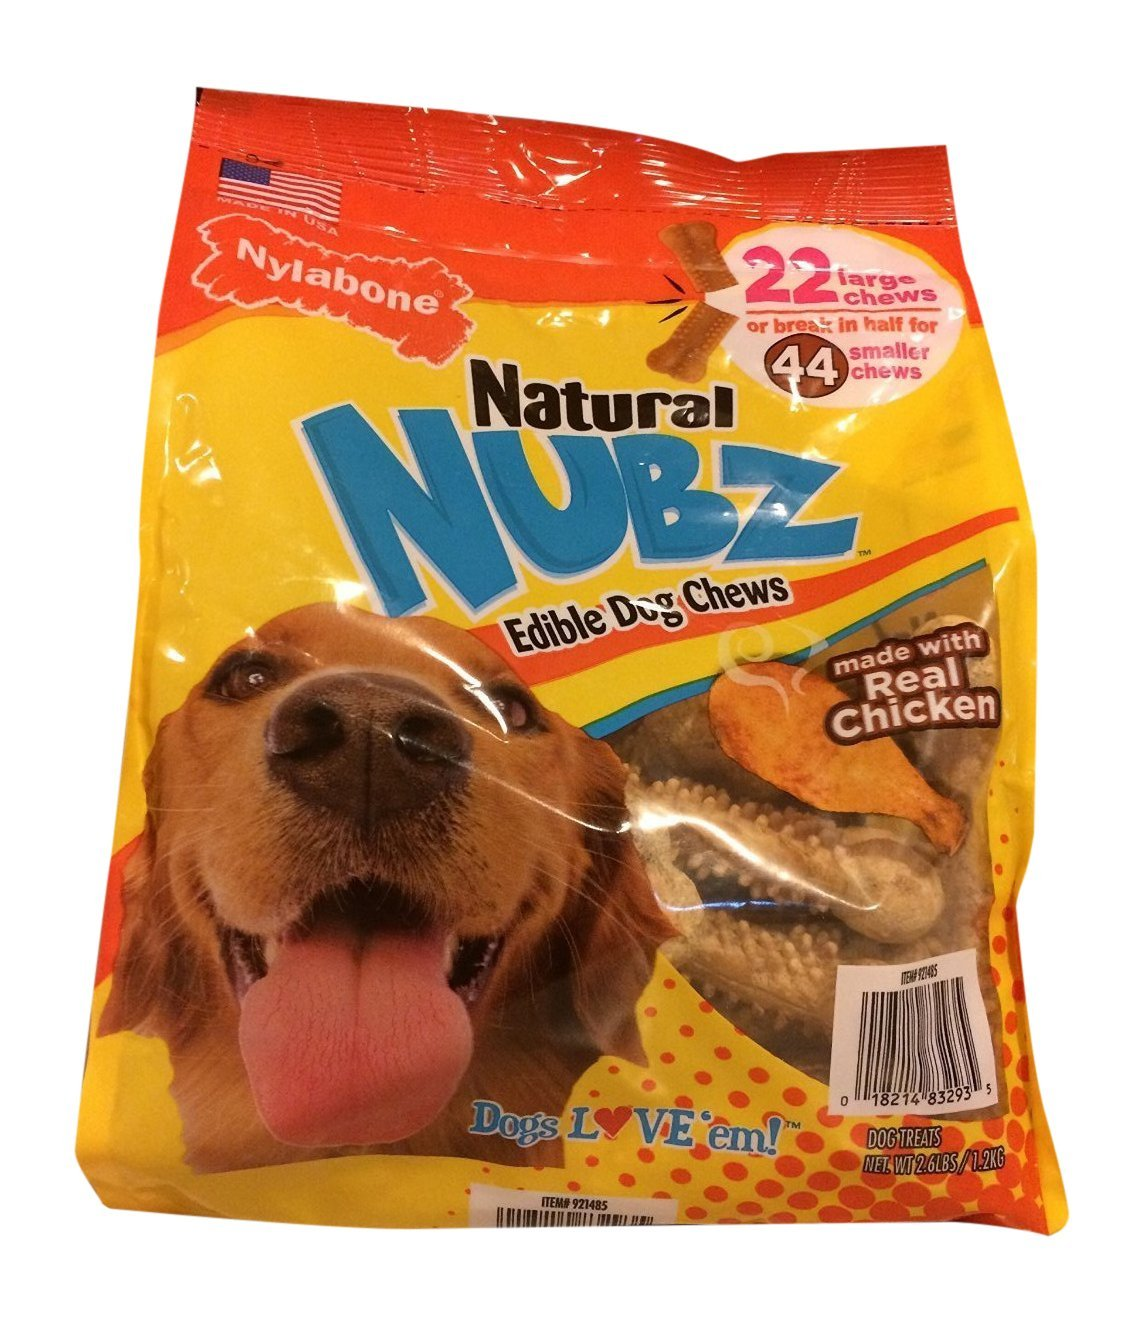 Natural Nubz Nylabone Edible Dog Chews, 22 Count, 2.6 lb Bag